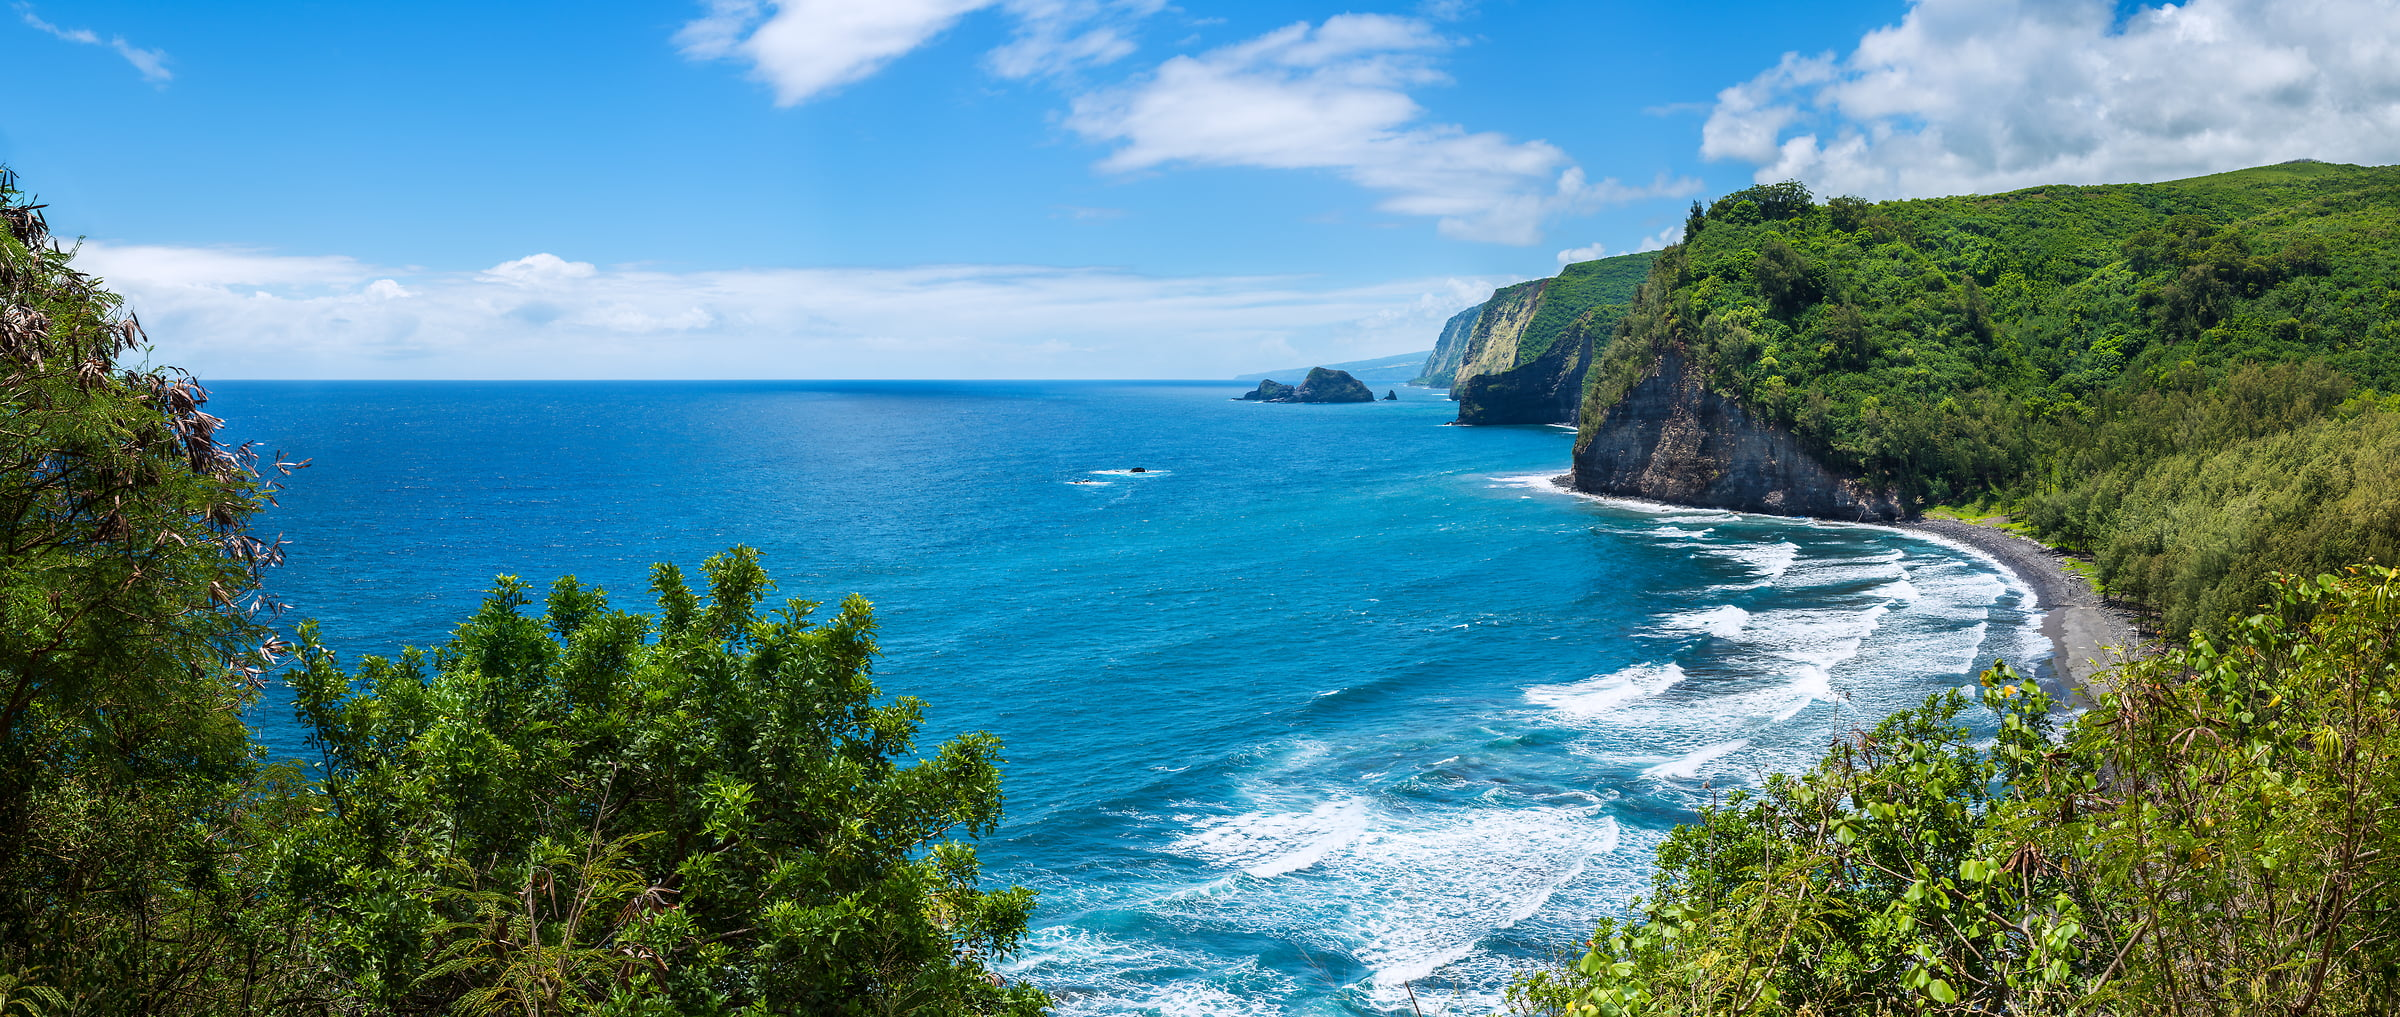 293 megapixels! A very high resolution, large-format VAST photo of the coastline in Hawaii with the ocean; landscape photograph created by Jim Tarpo in Pololu Valley, Hawaii